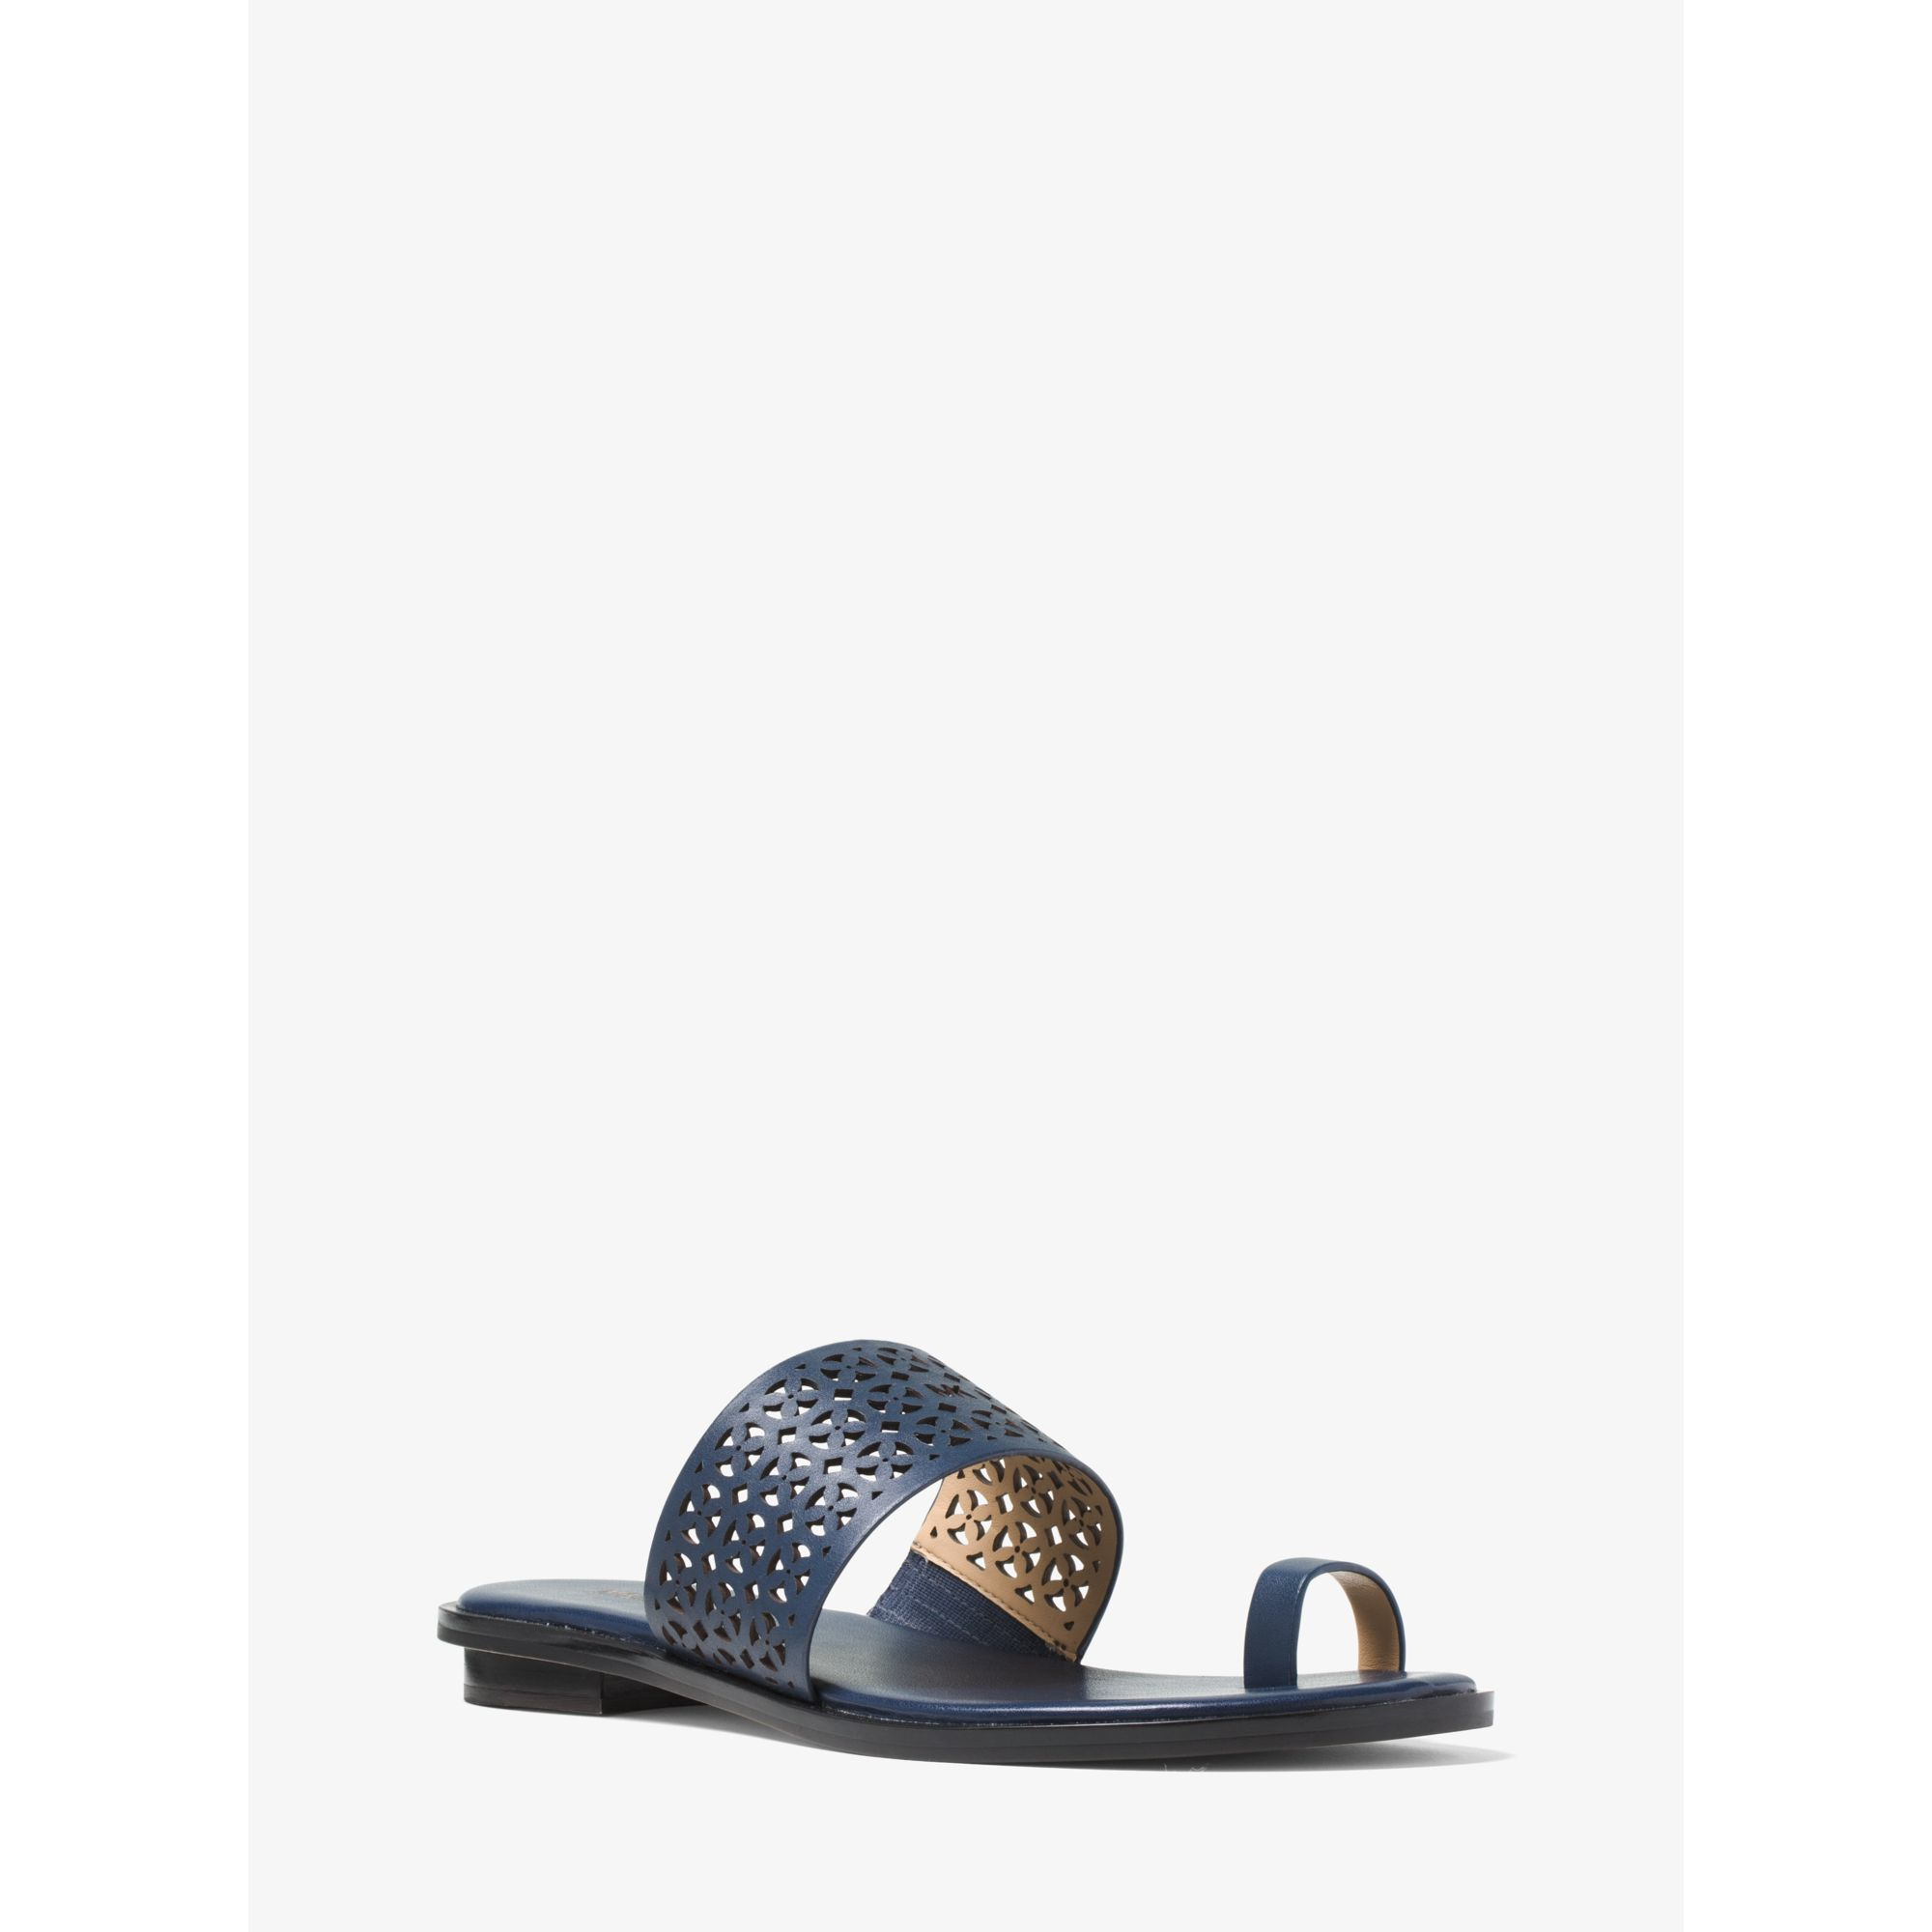 Michael Kors Sonya Perforated Leather Sandal In Blue Lyst